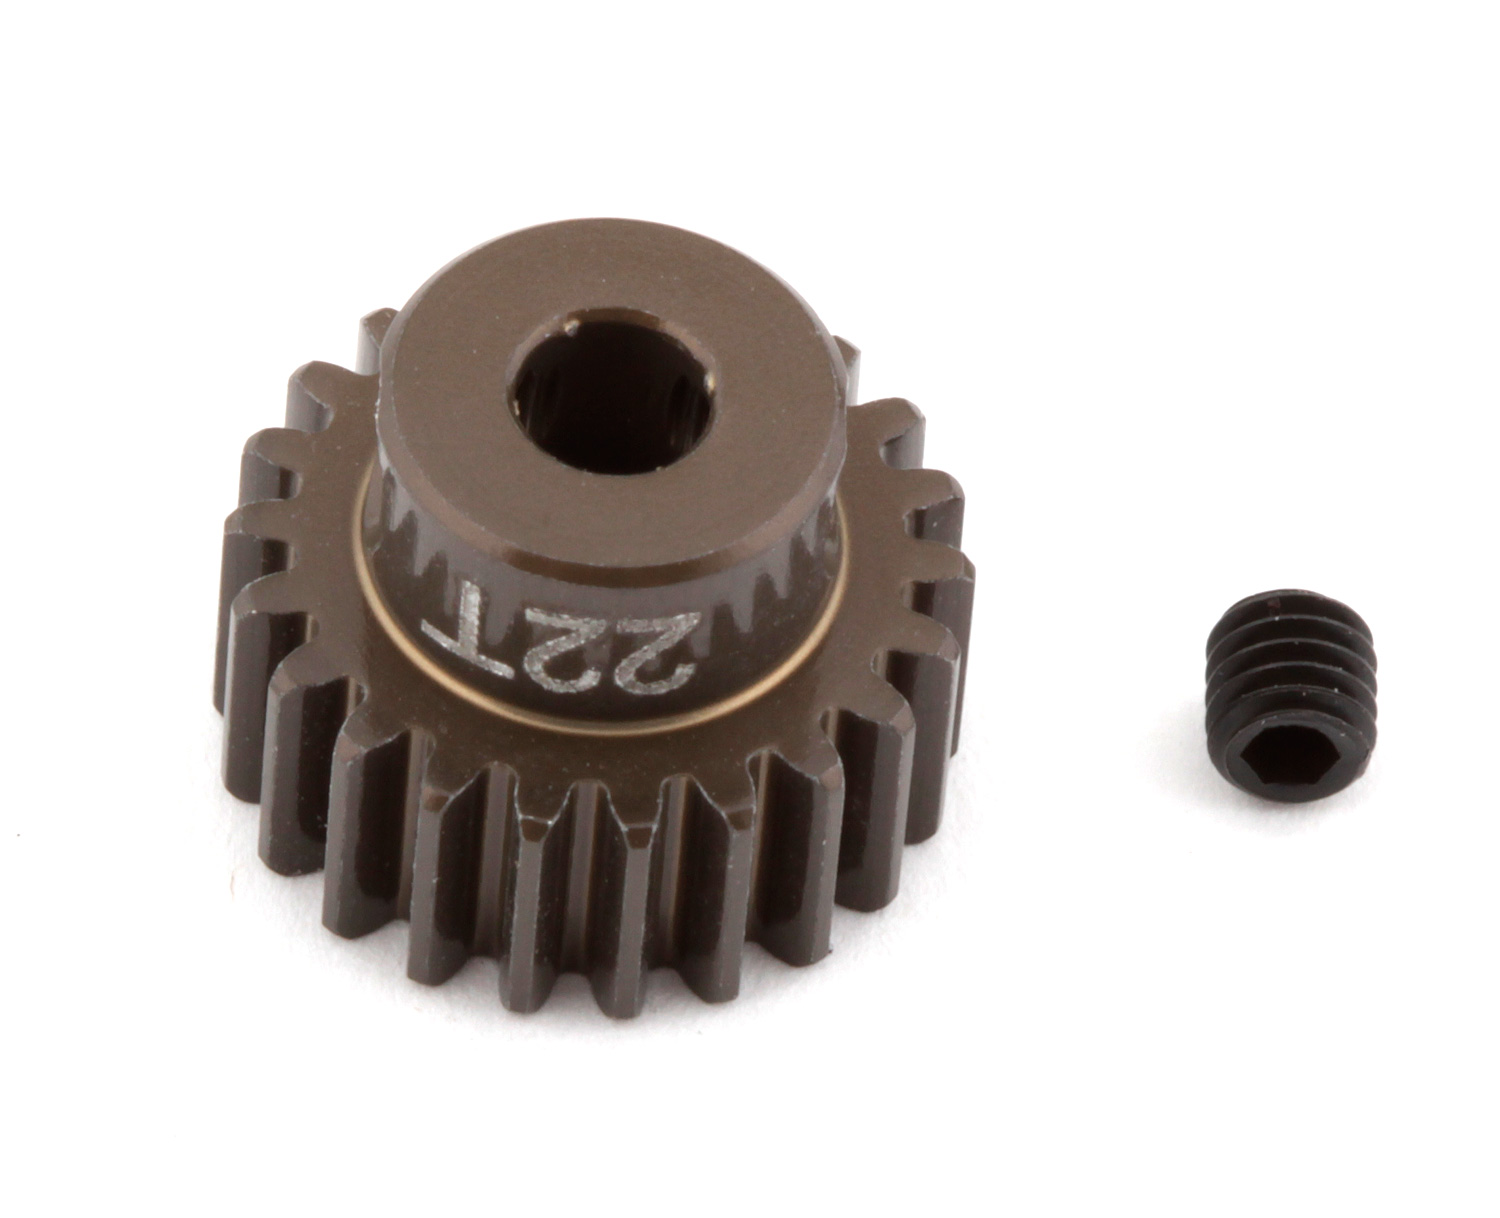 ASC1340 FT Aluminum Pinion Gear, 22T 48P, 1/8 shaft